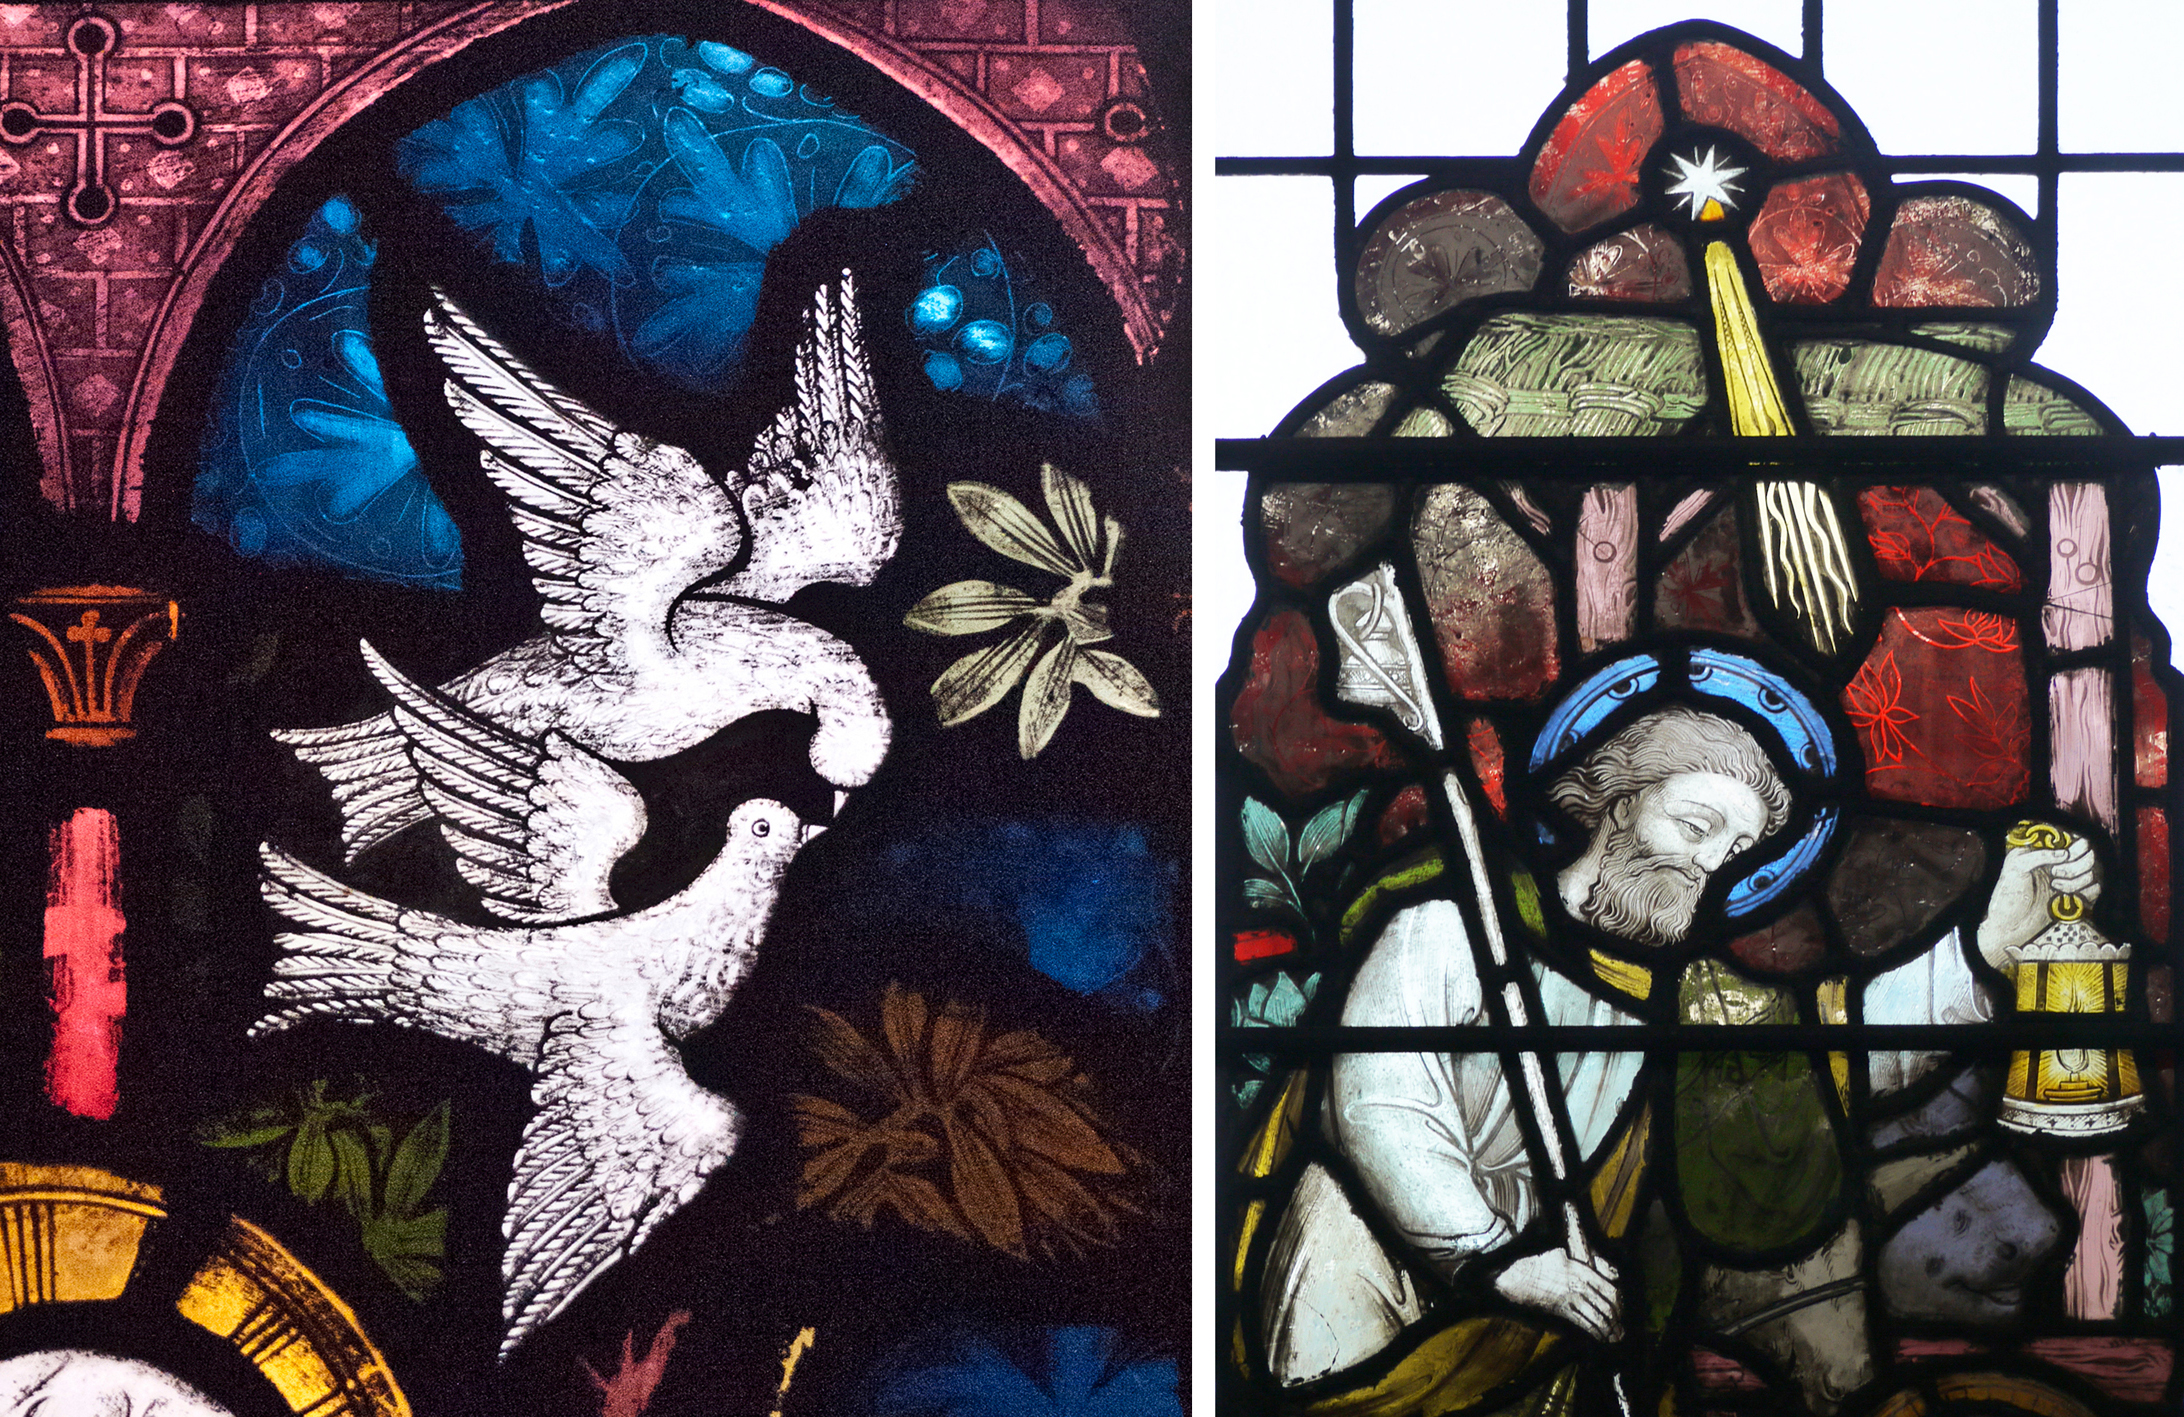 Left: detail from window of St Timothy. Right: detail from nativity window.